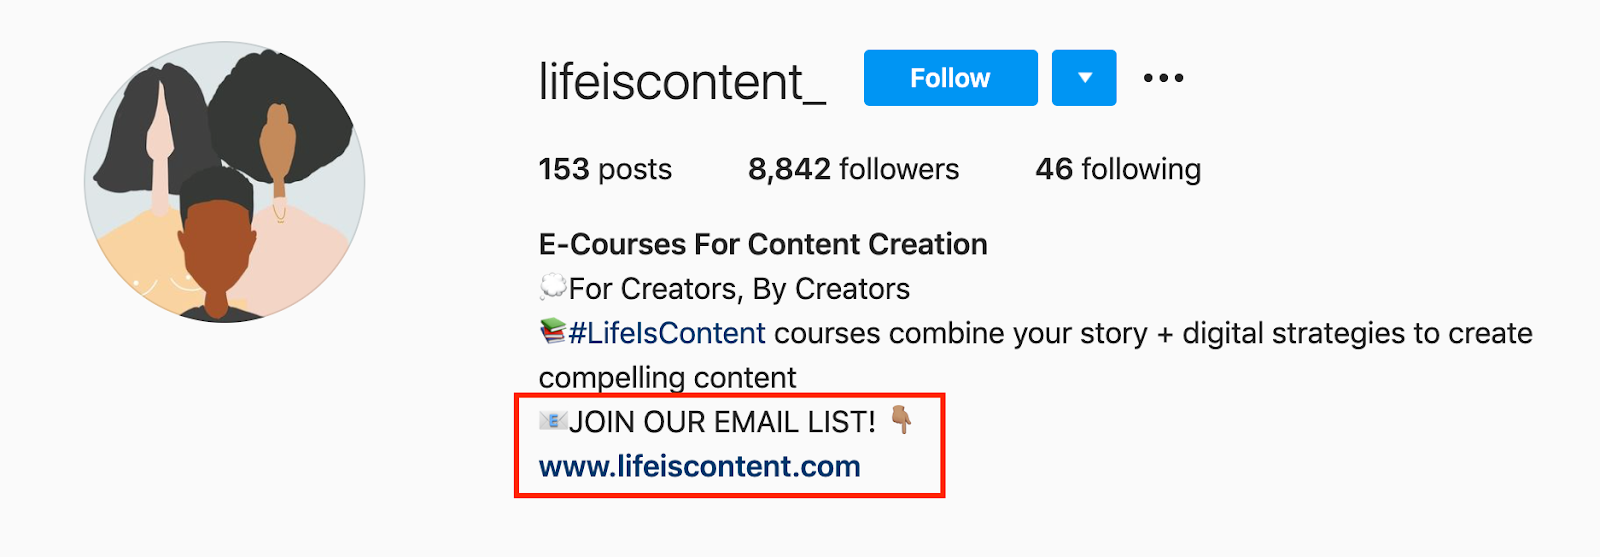 joing email list cta in instagram bio